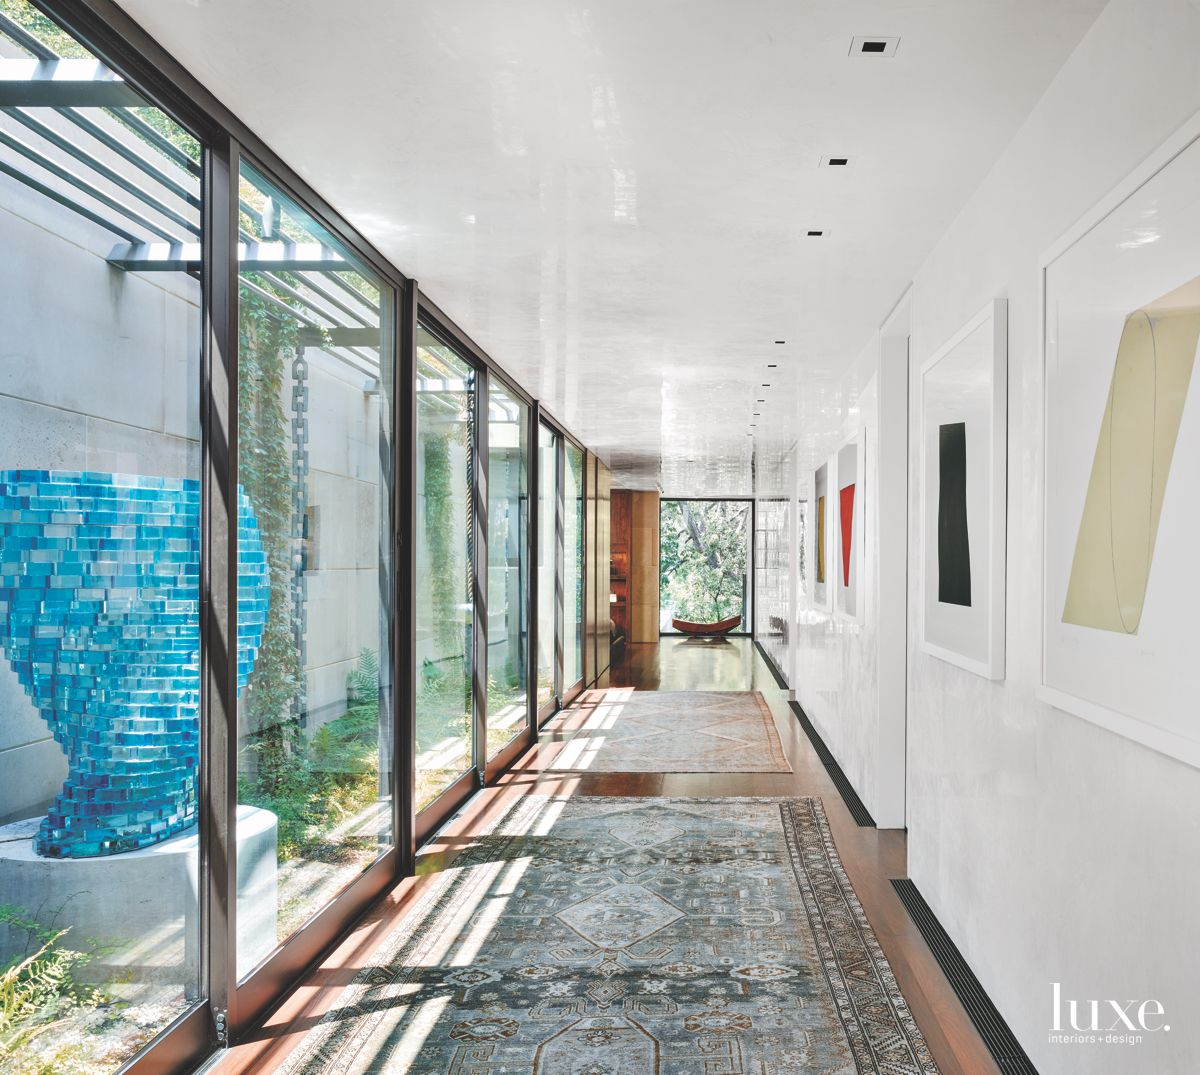 Light-Filled San Antonio Hallway With Walls of Art and Windows